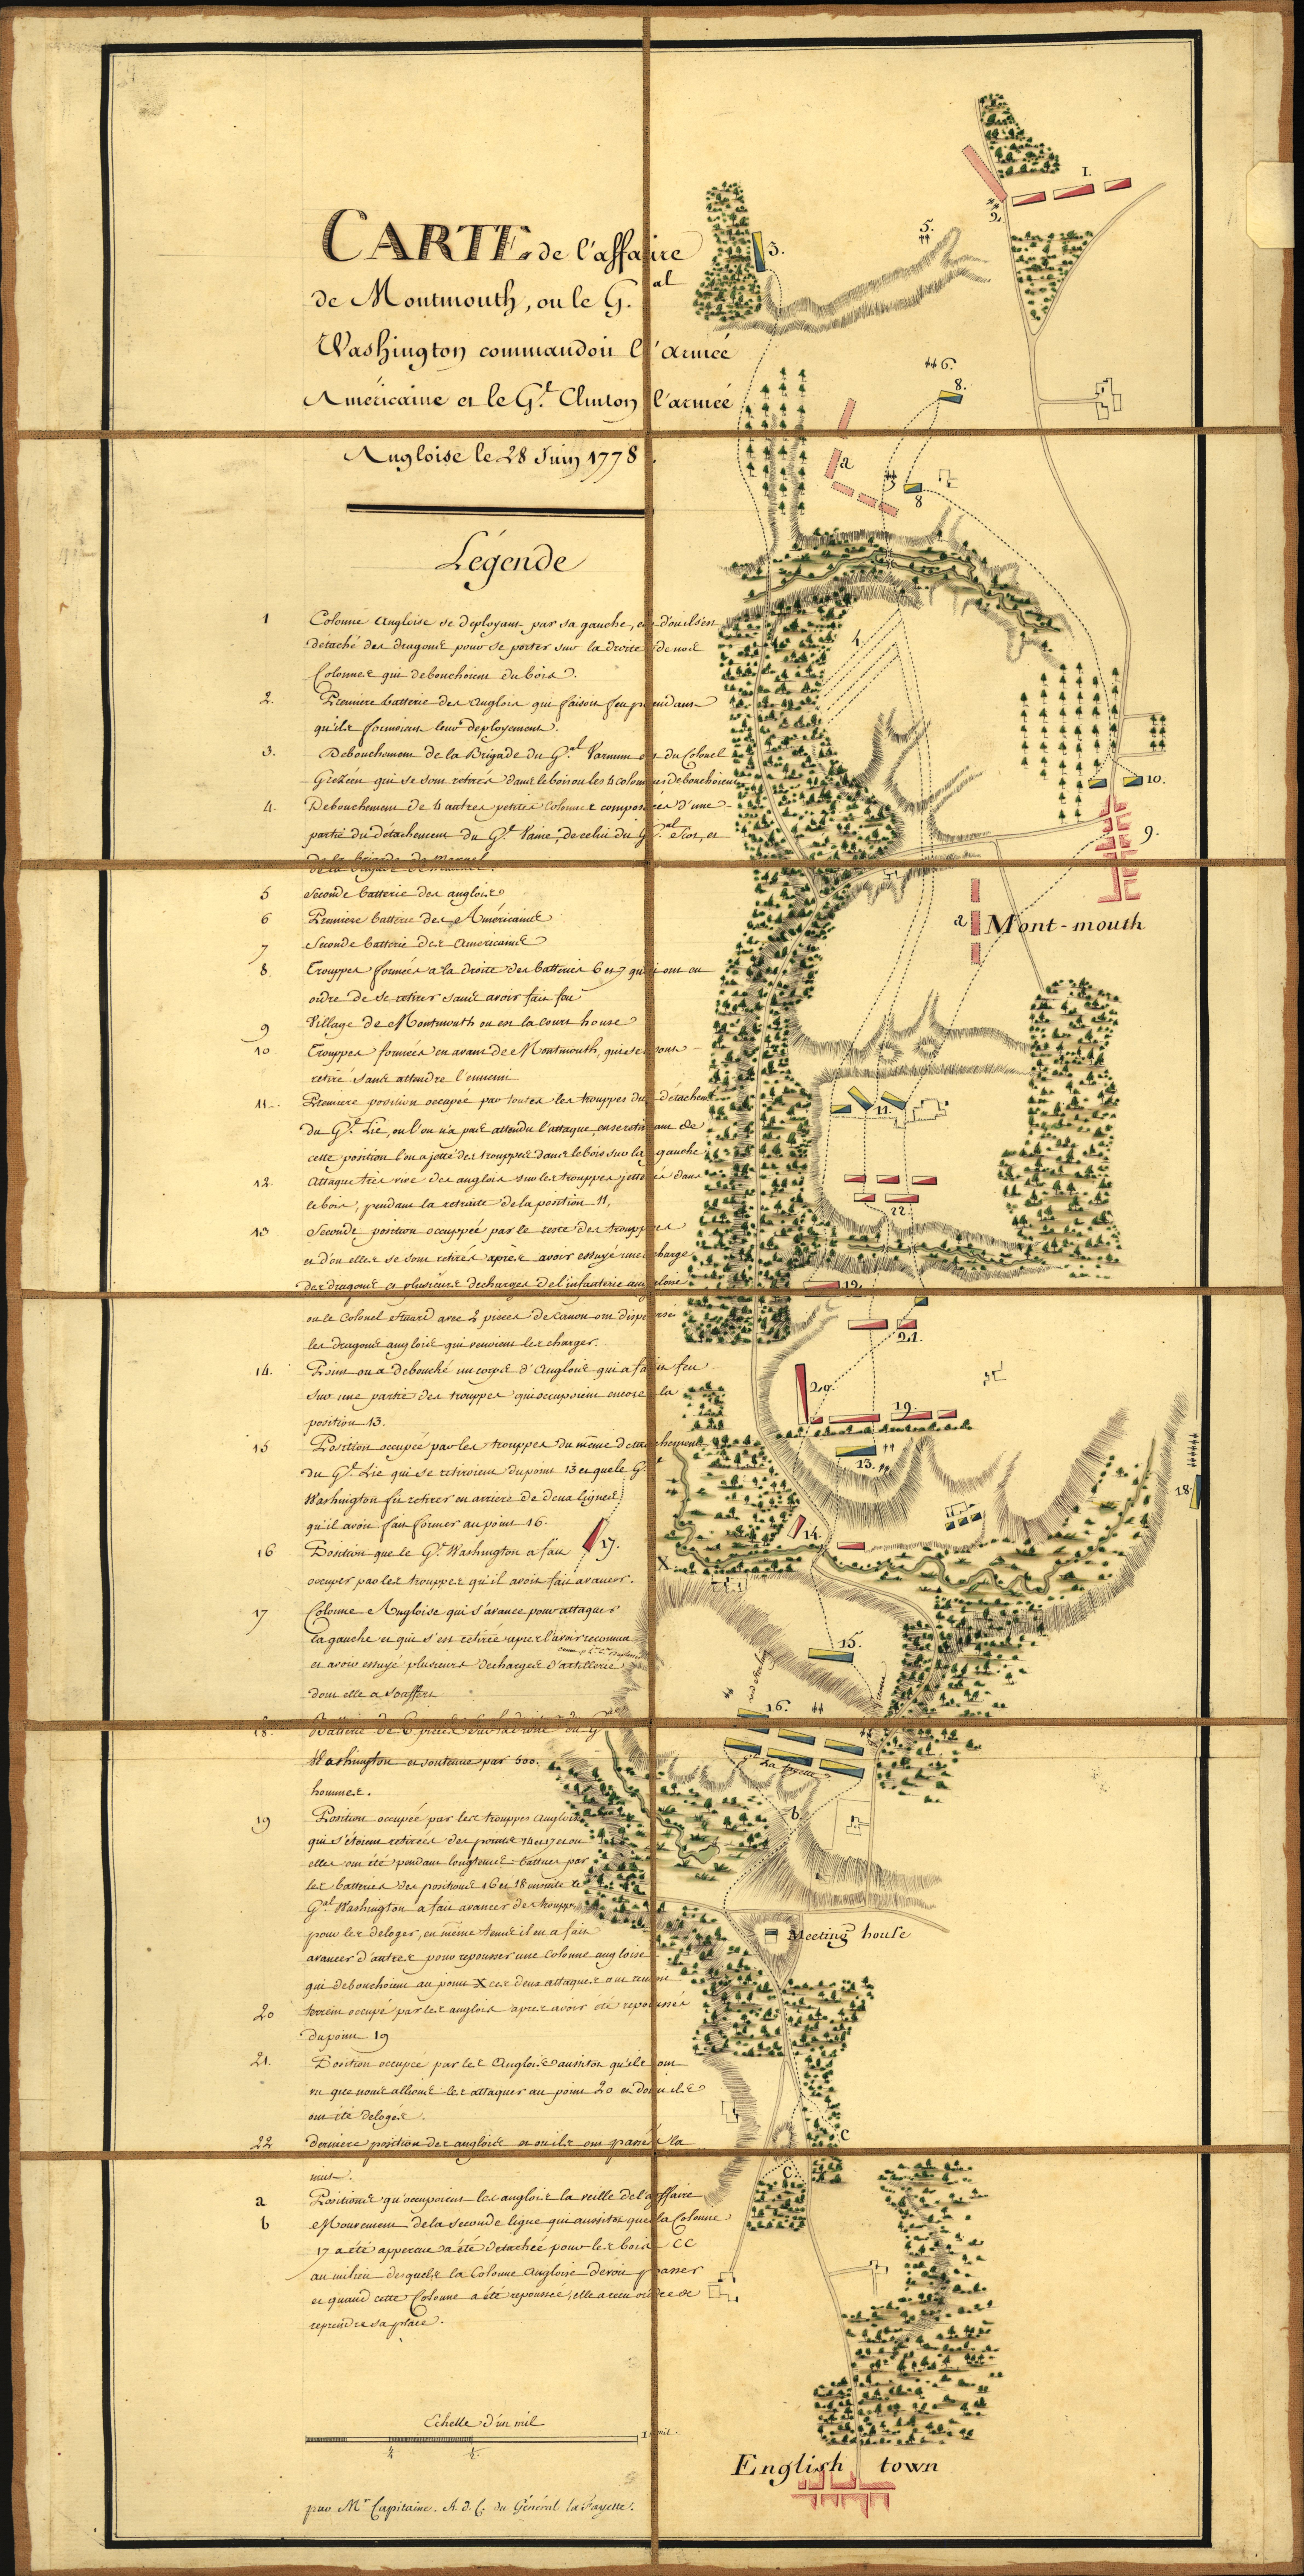 Map of the Battle of Monmouth Courthouse, N.J. on June 28, 1778. Drawn by Michel Capitaine du Chesnoy, aide-de-camp to Lafayette.